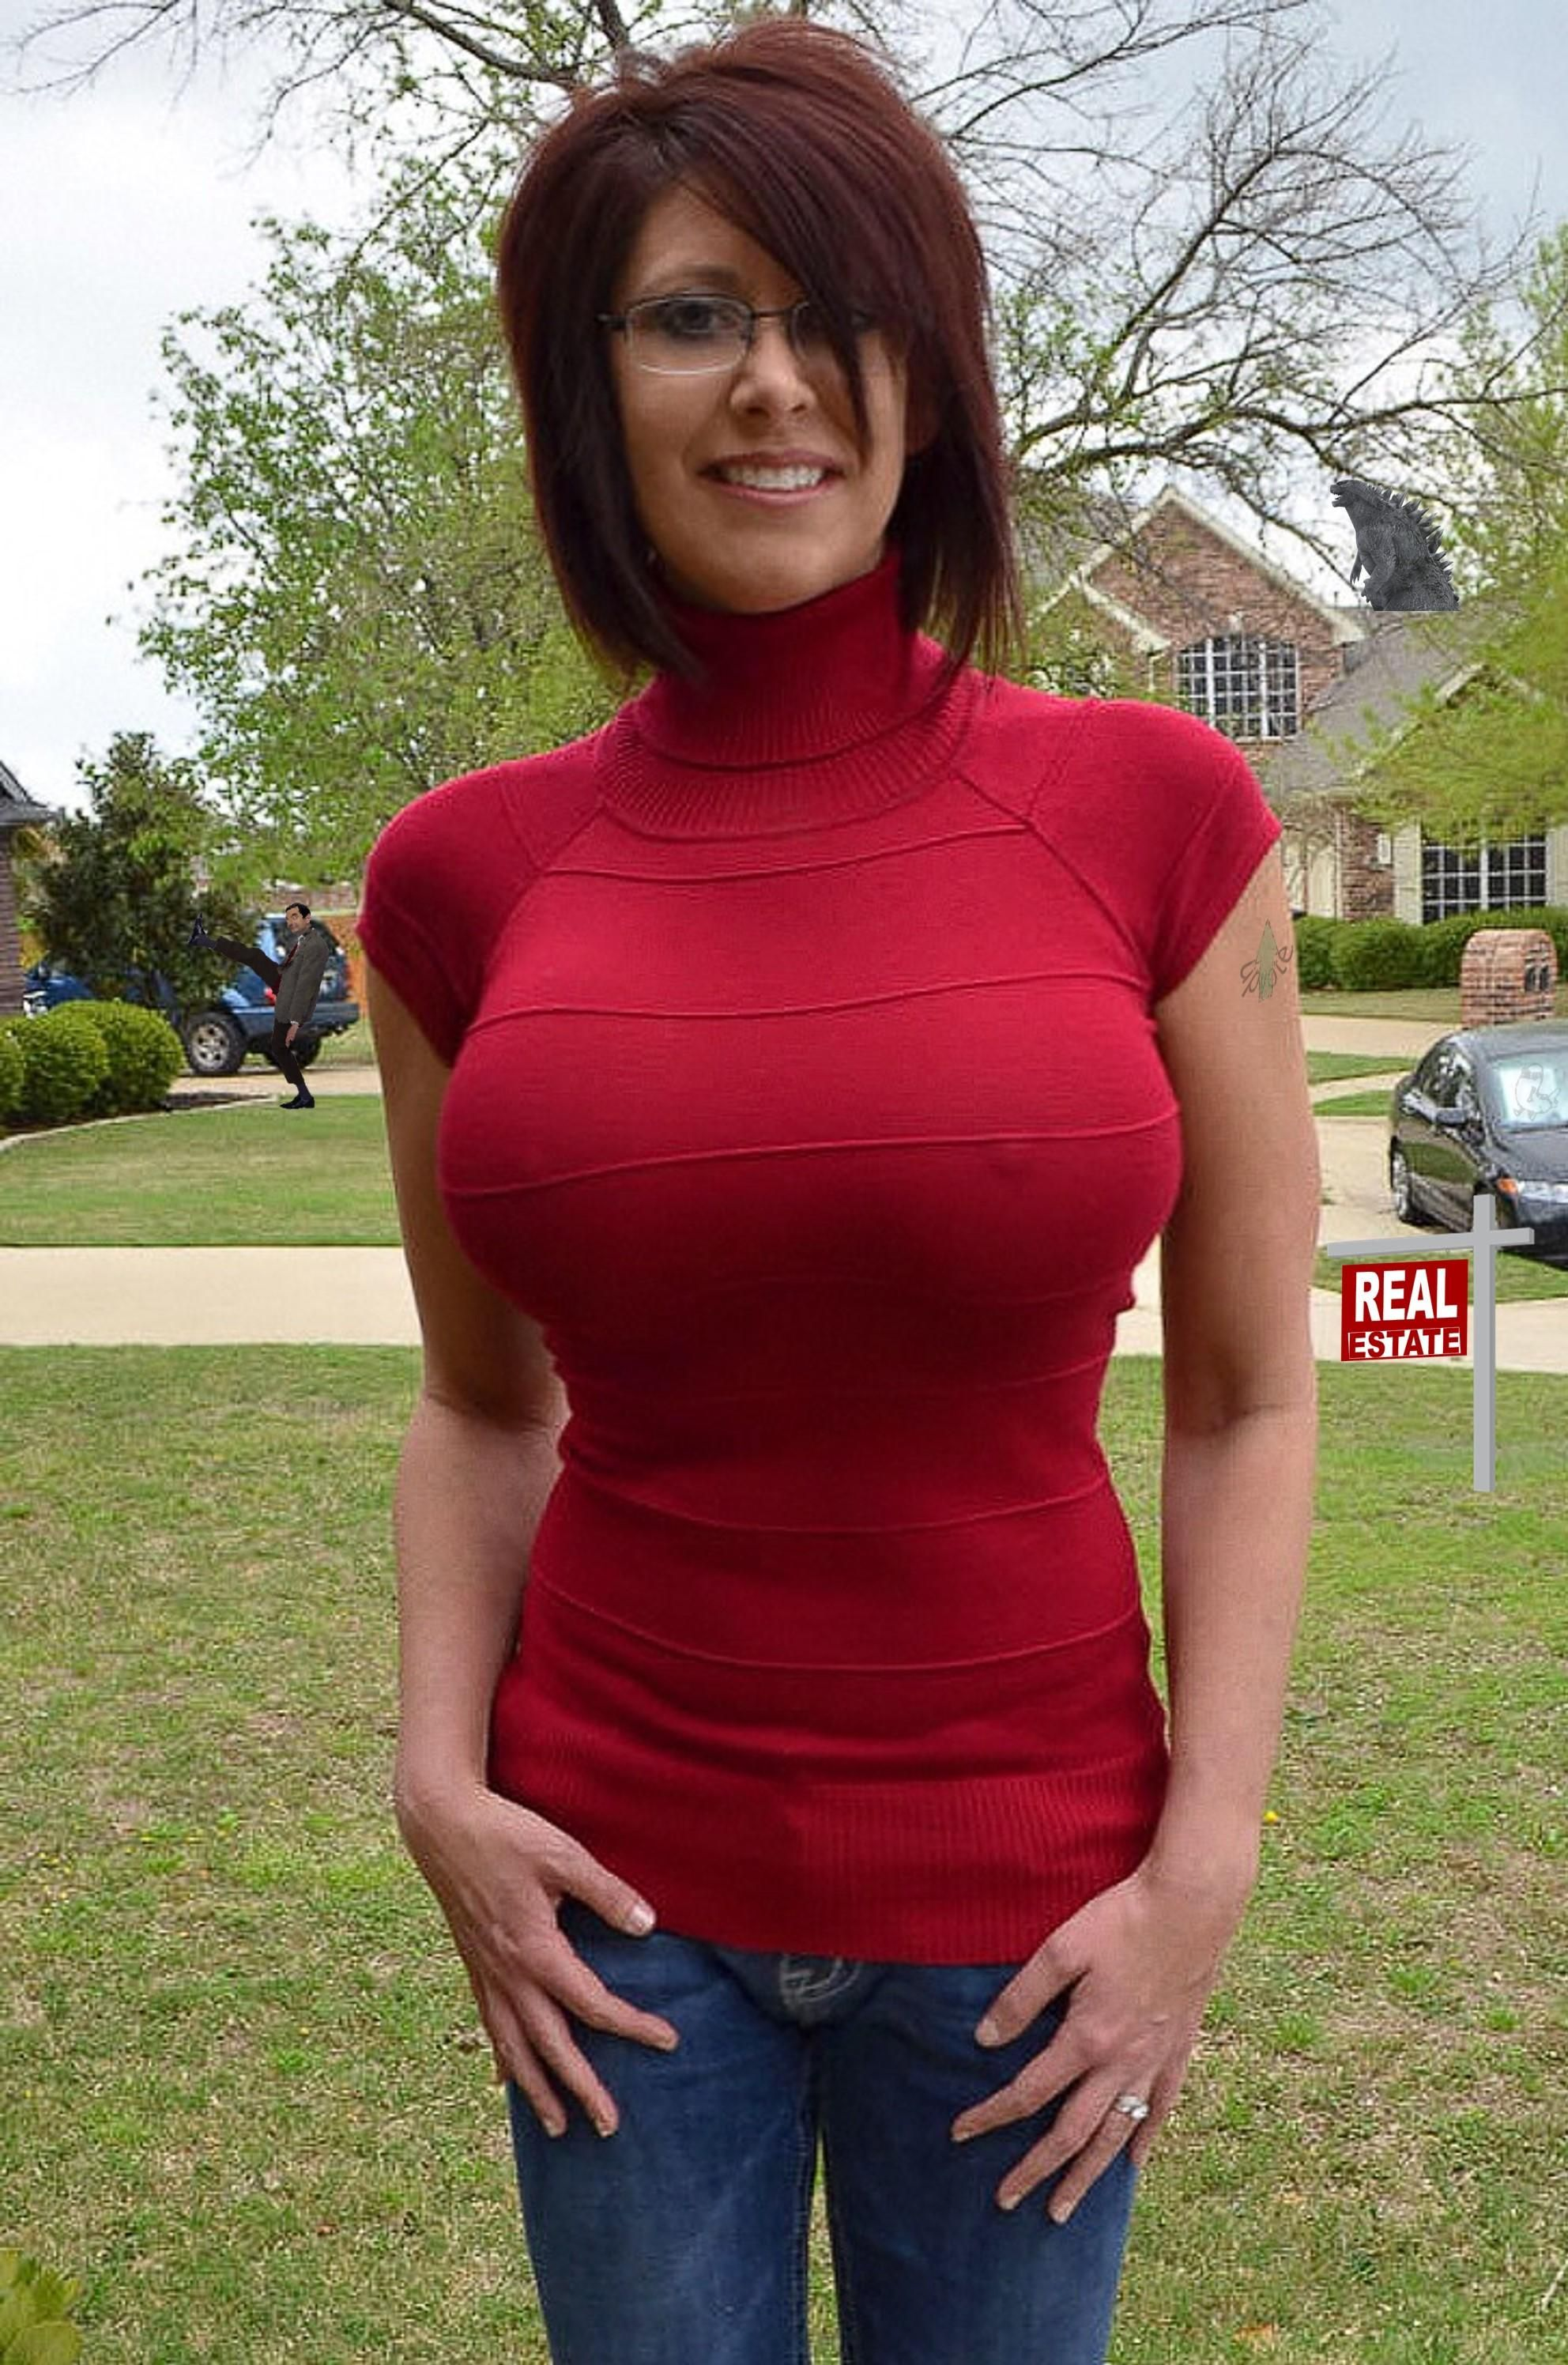 Busty Milf Pokies In Sweater  Milfs  Pinterest-2507